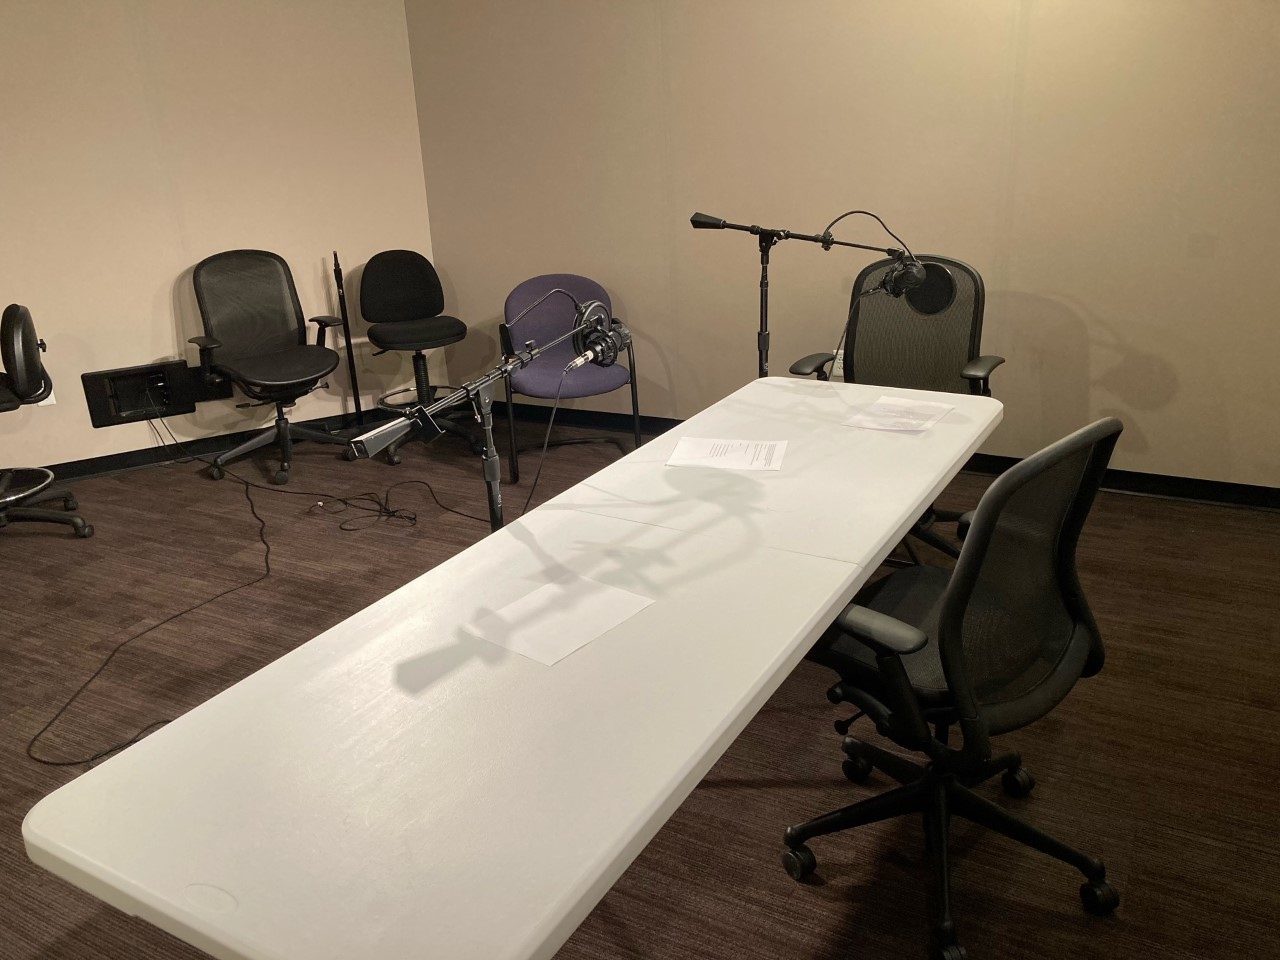 A view inside the audio recording studio located at the Marriott Library in suite 1705.